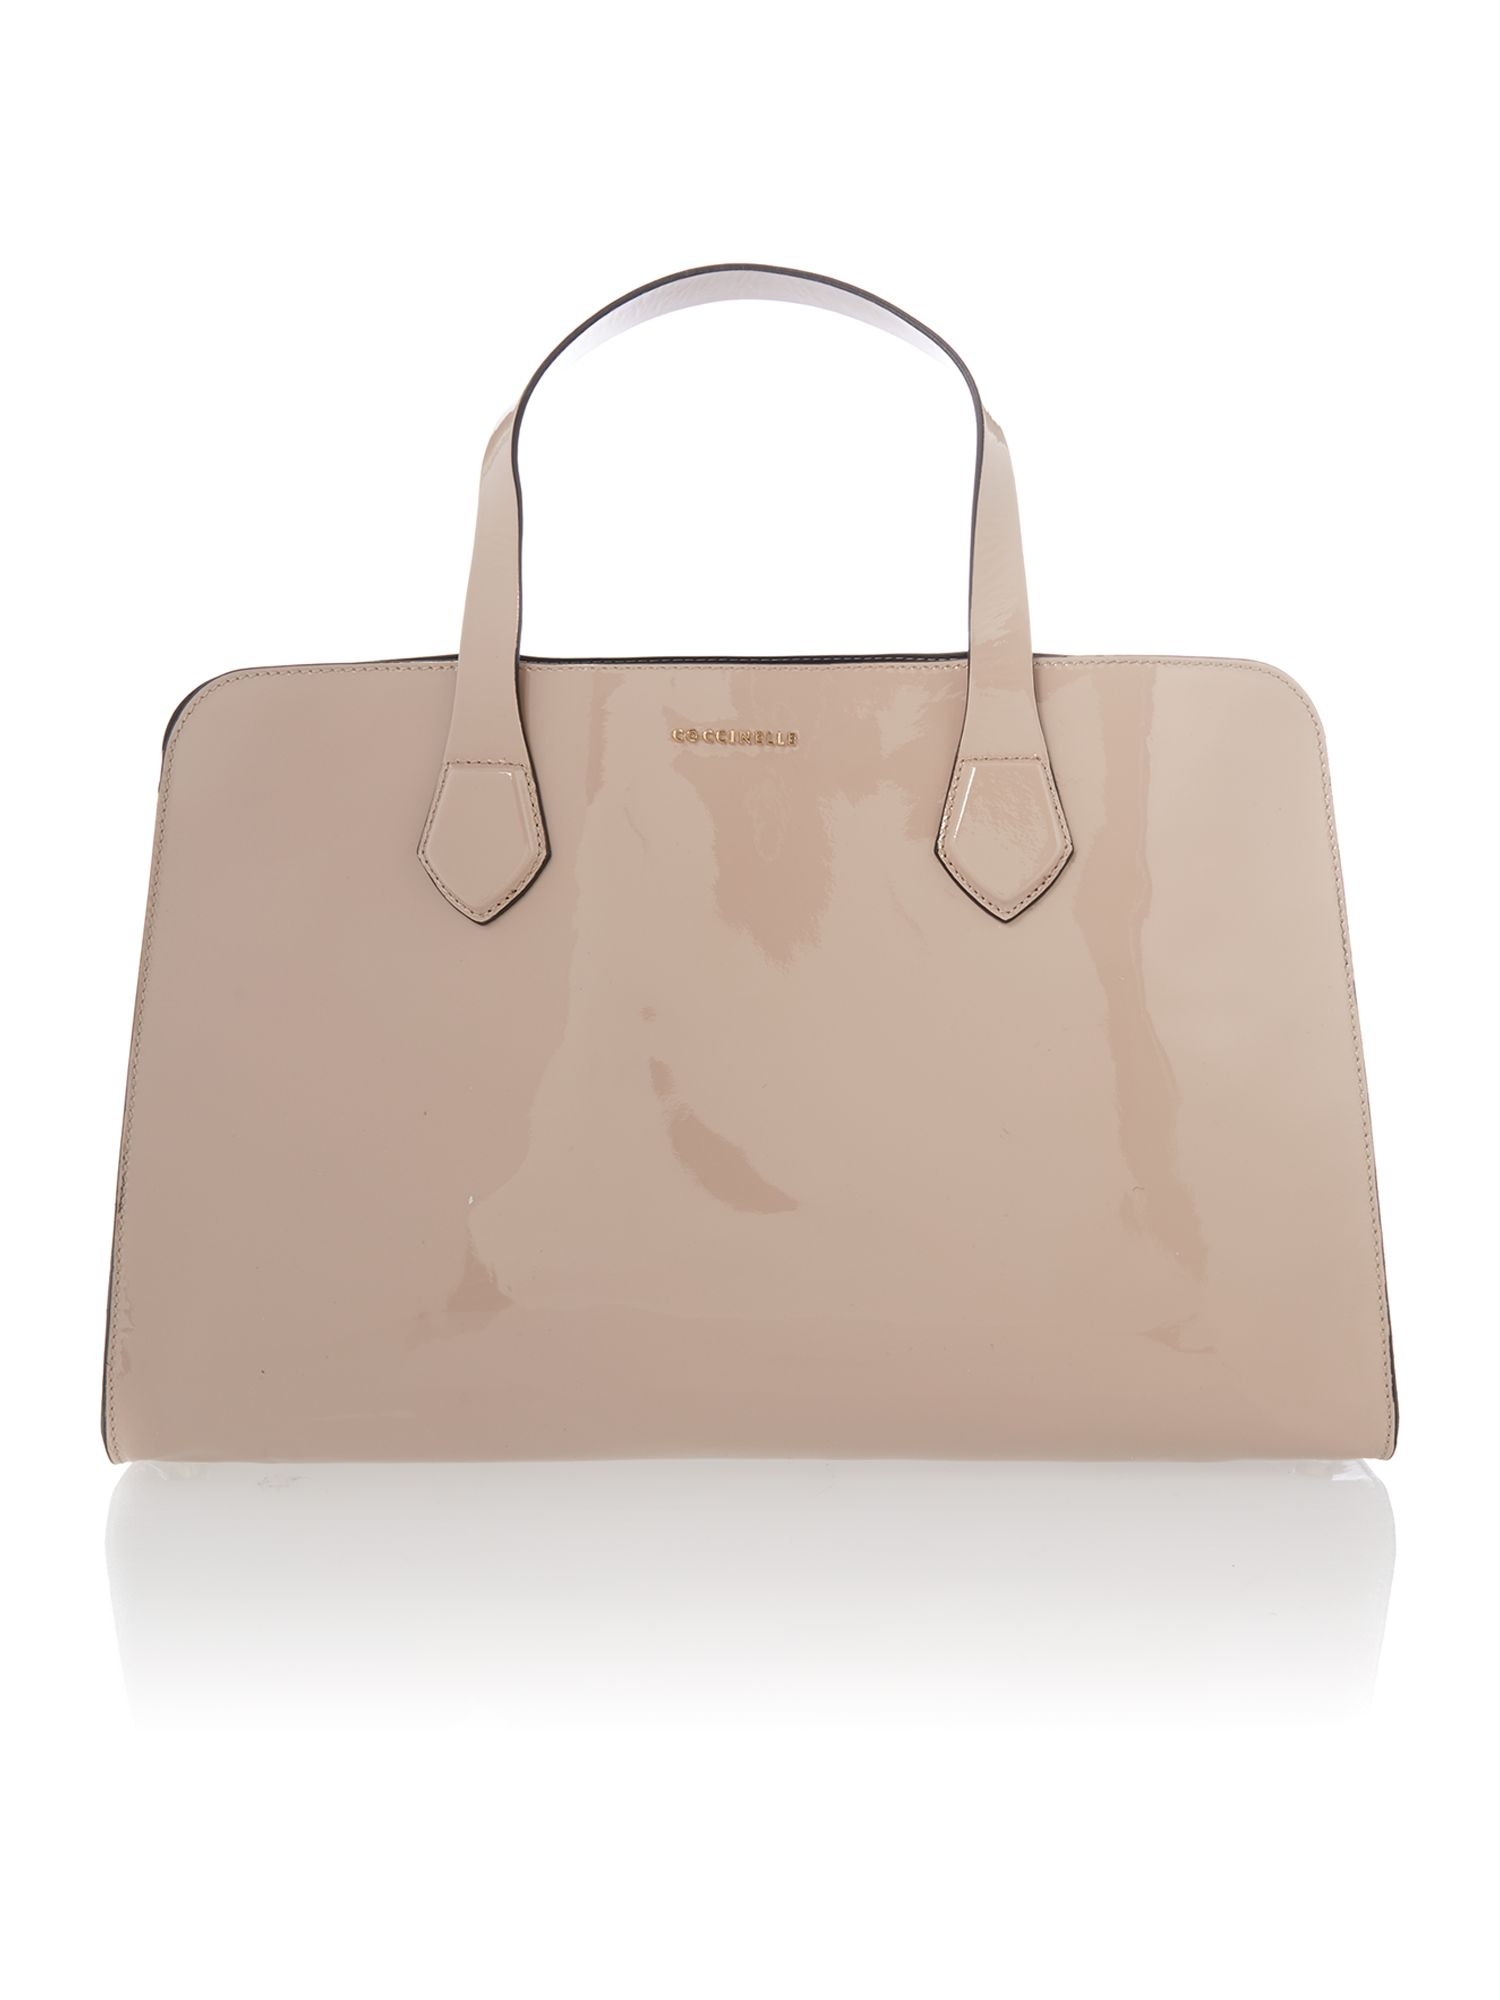 Moon neutral patent large tote